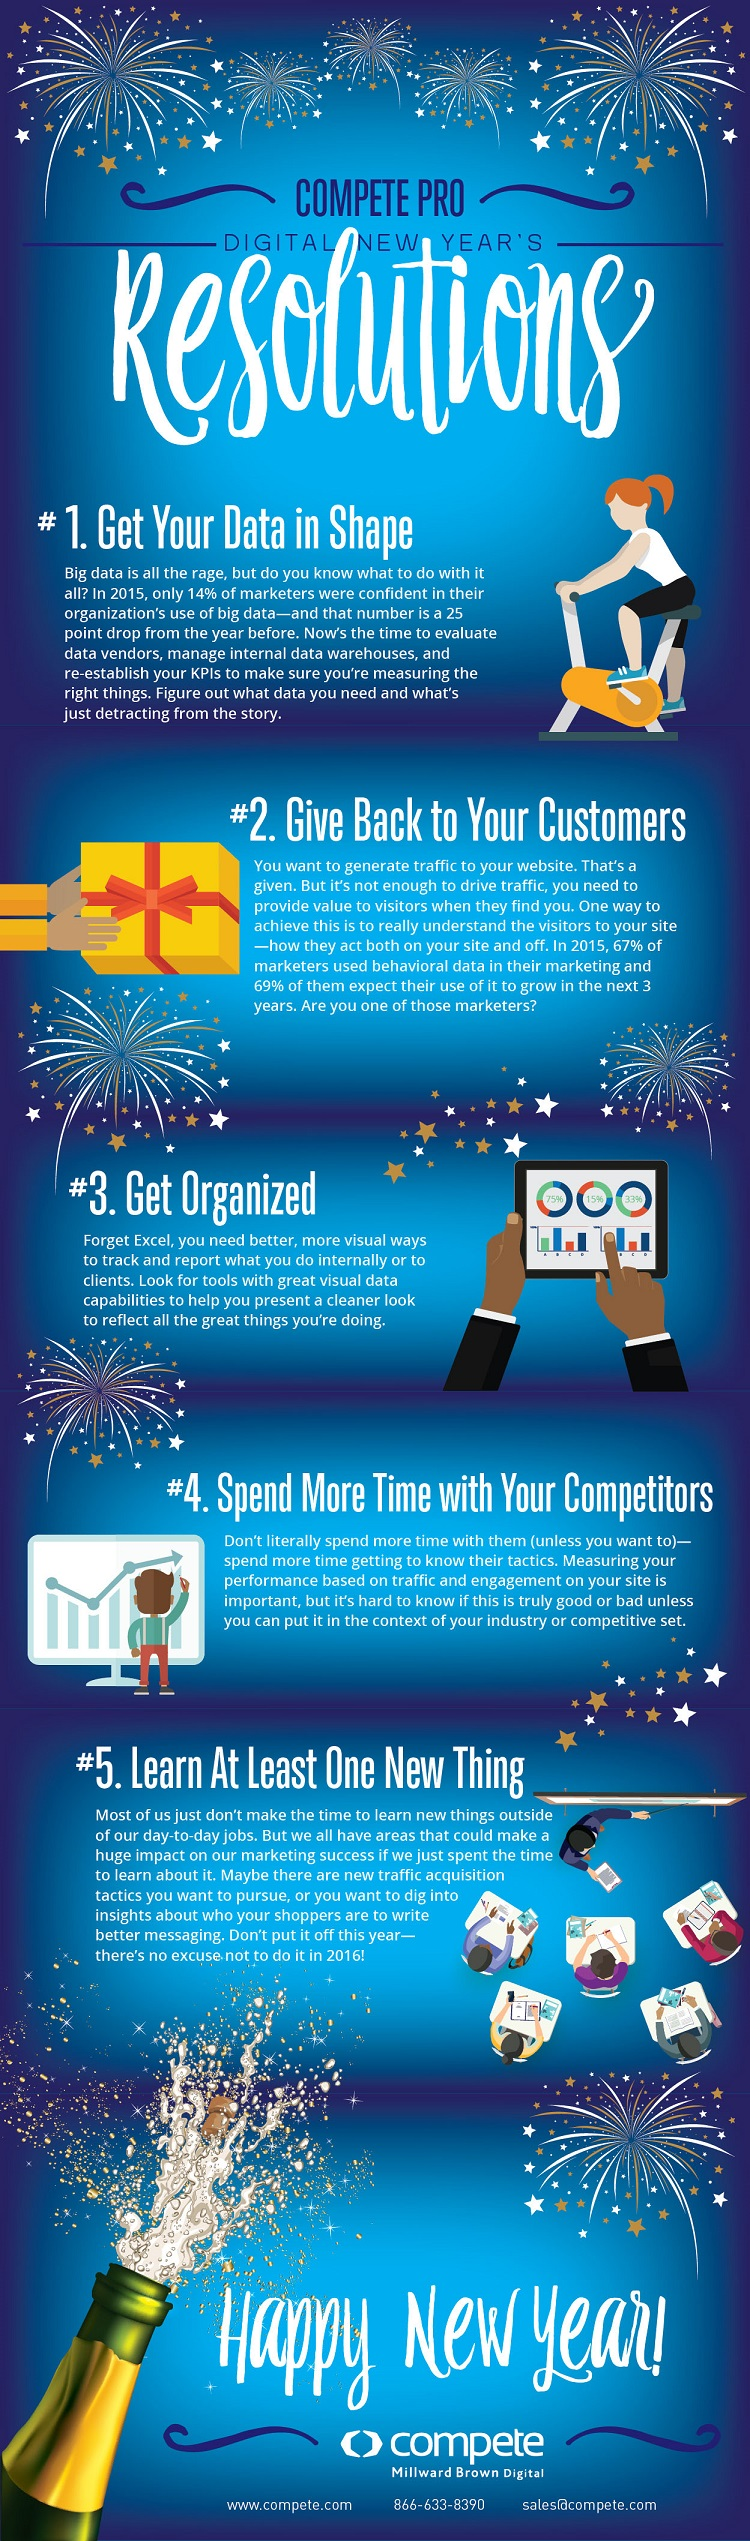 Digital New Year's Resolutions 2016 infographic